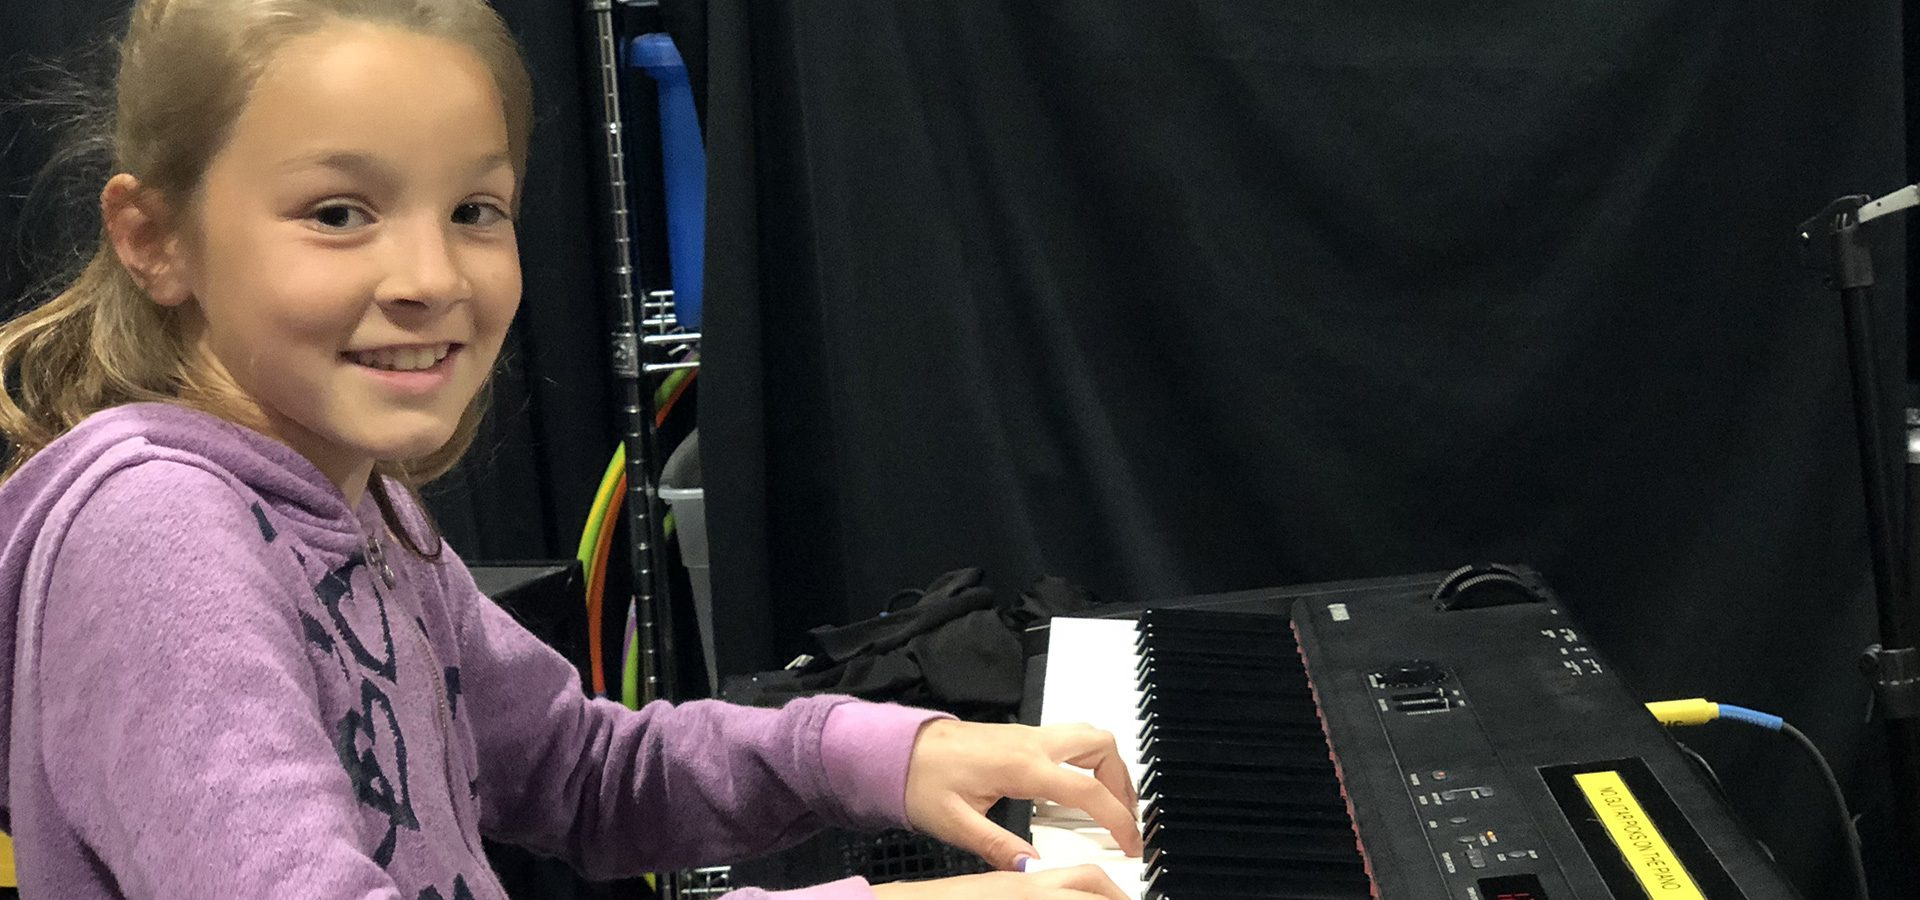 Intro to Music Camp - Beginner Piano Lessons - Sherman Oaks, Los Angeles - Join The Band